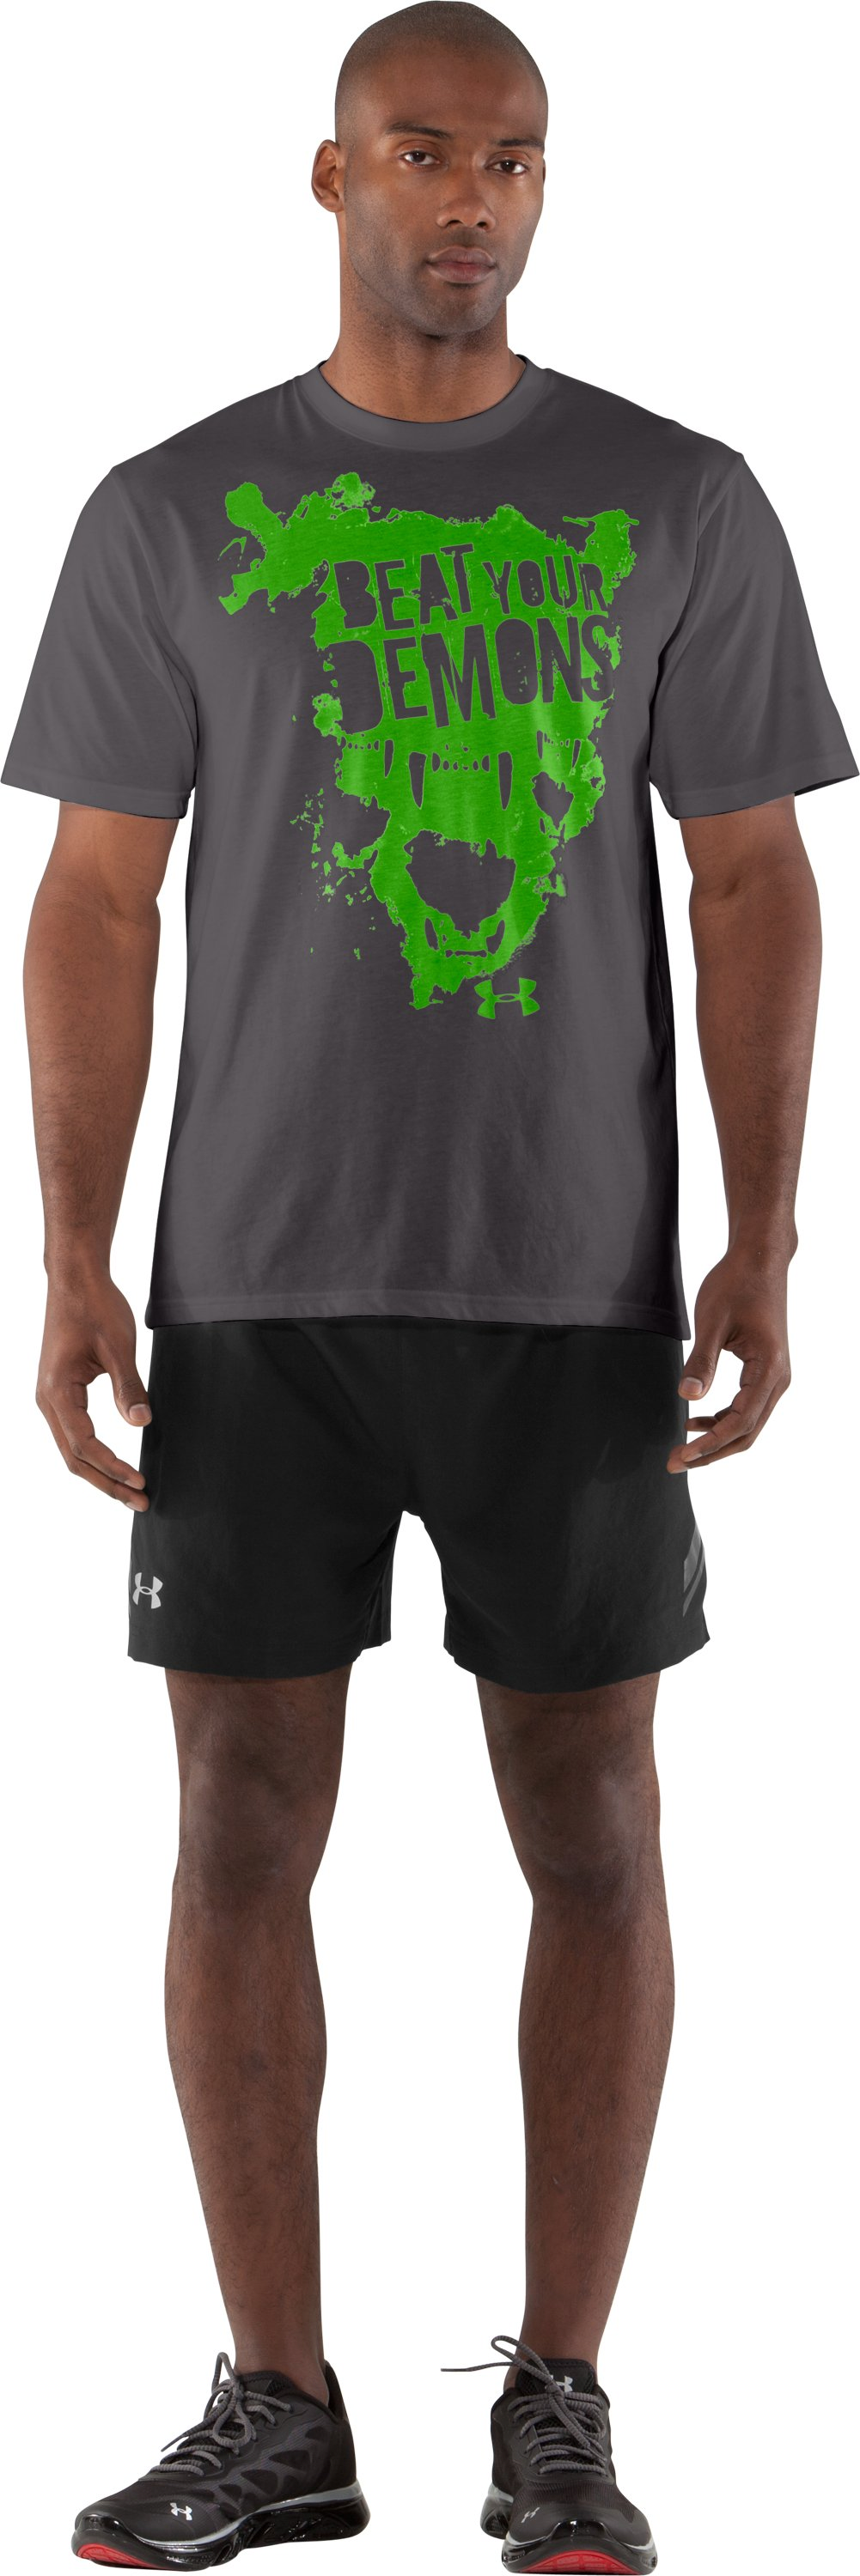 Men's UA Beat Your Demons T-Shirt, Charcoal, zoomed image